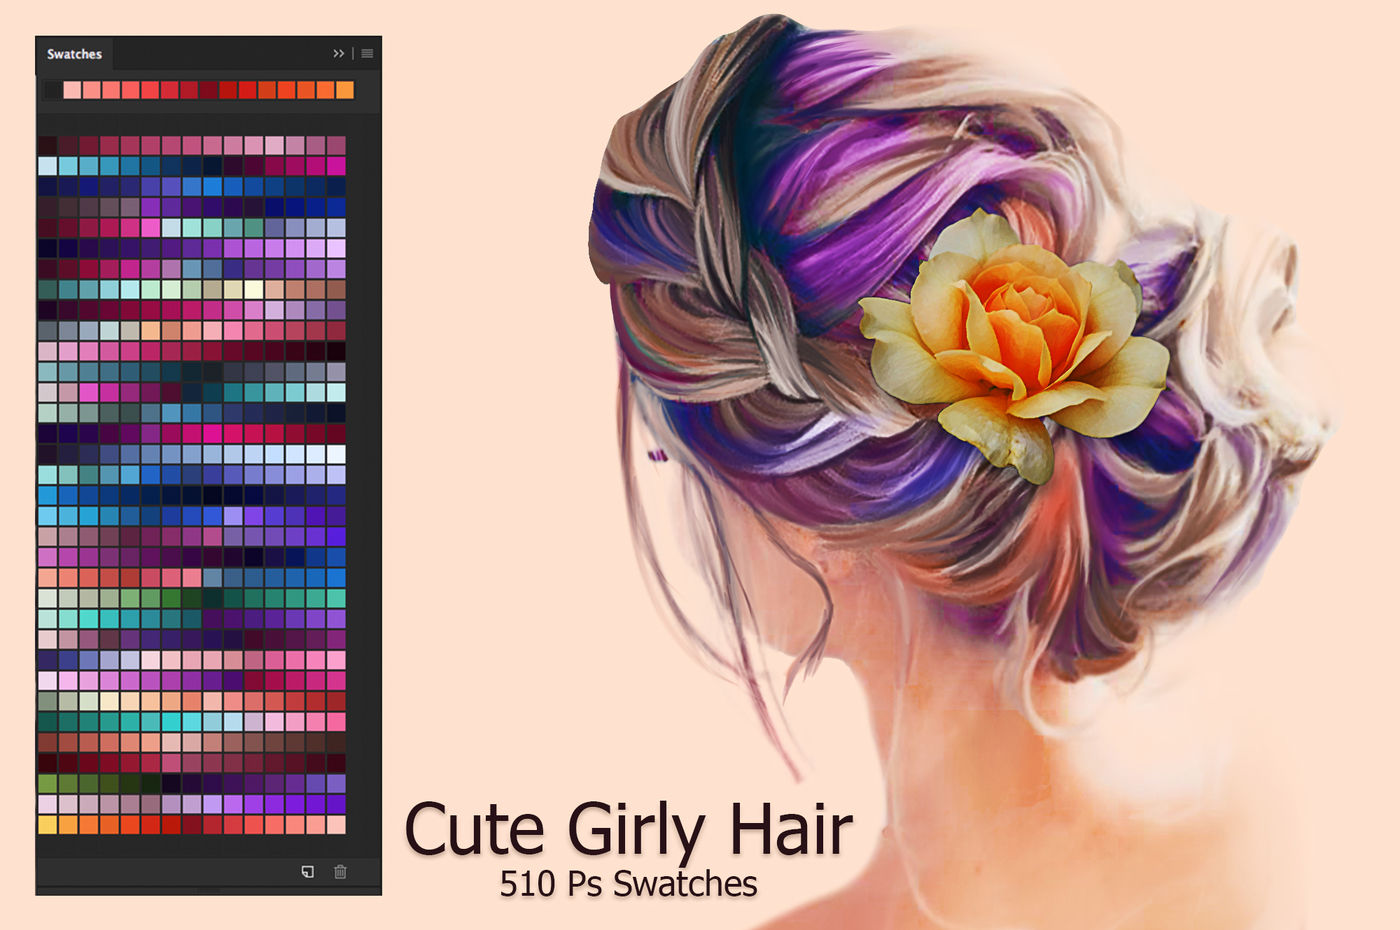 Cute Girly Hair Swatches By FaeryDesign | TheHungryJPEG.com